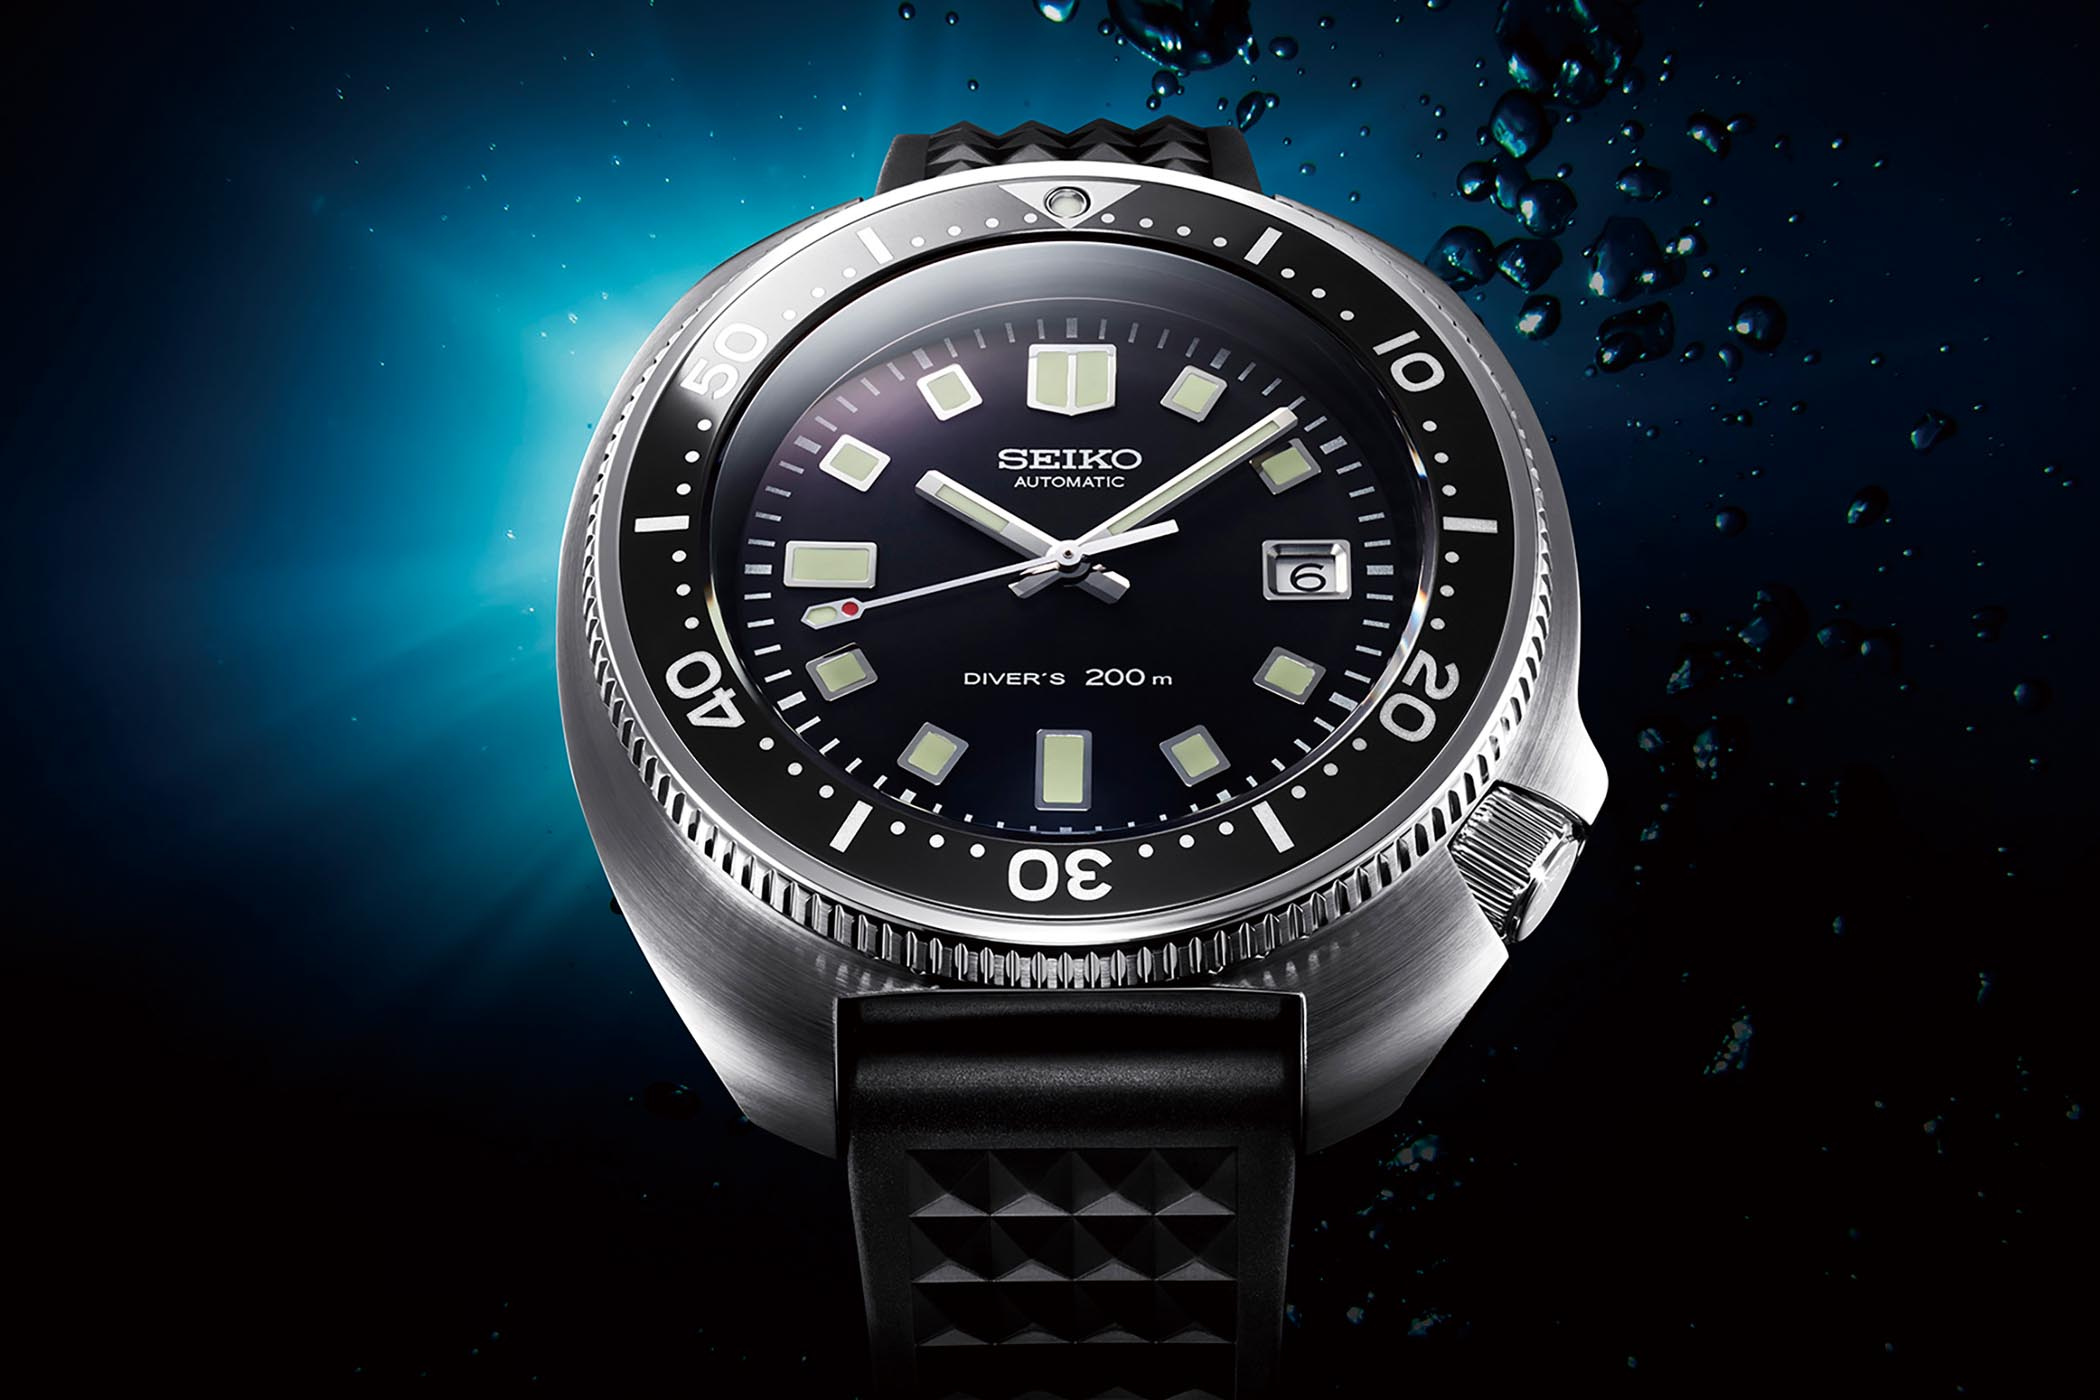 Baselworld 2019 Seiko 1970 Diver's Re Creation Limited